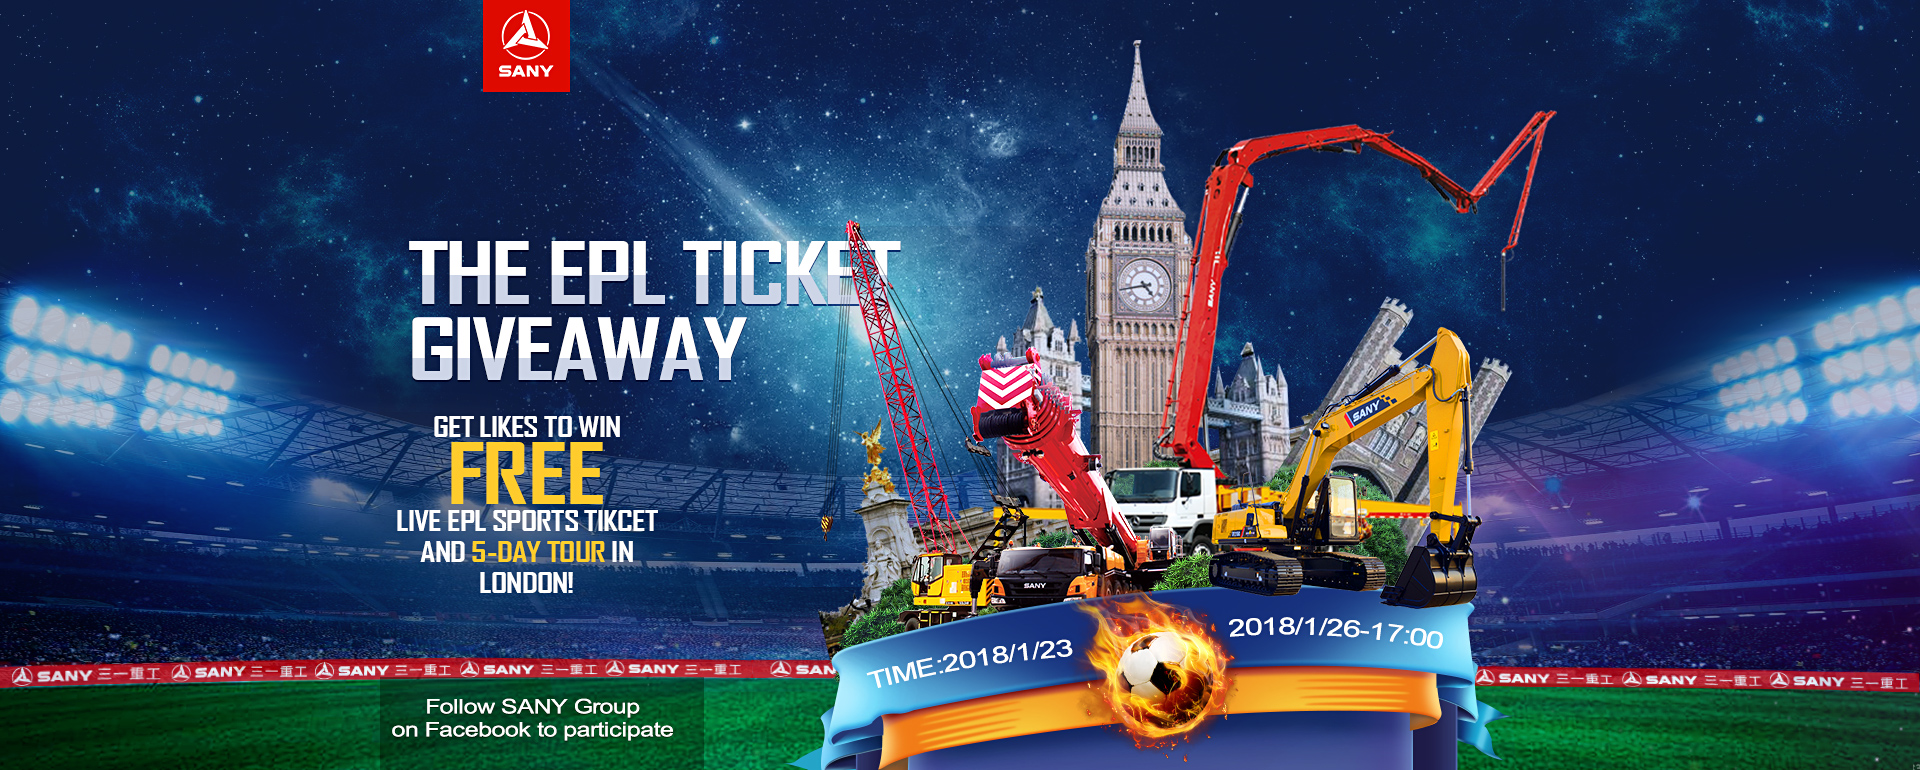 Get likes to win the FREE EPL sports ticket and 5-day tour in London